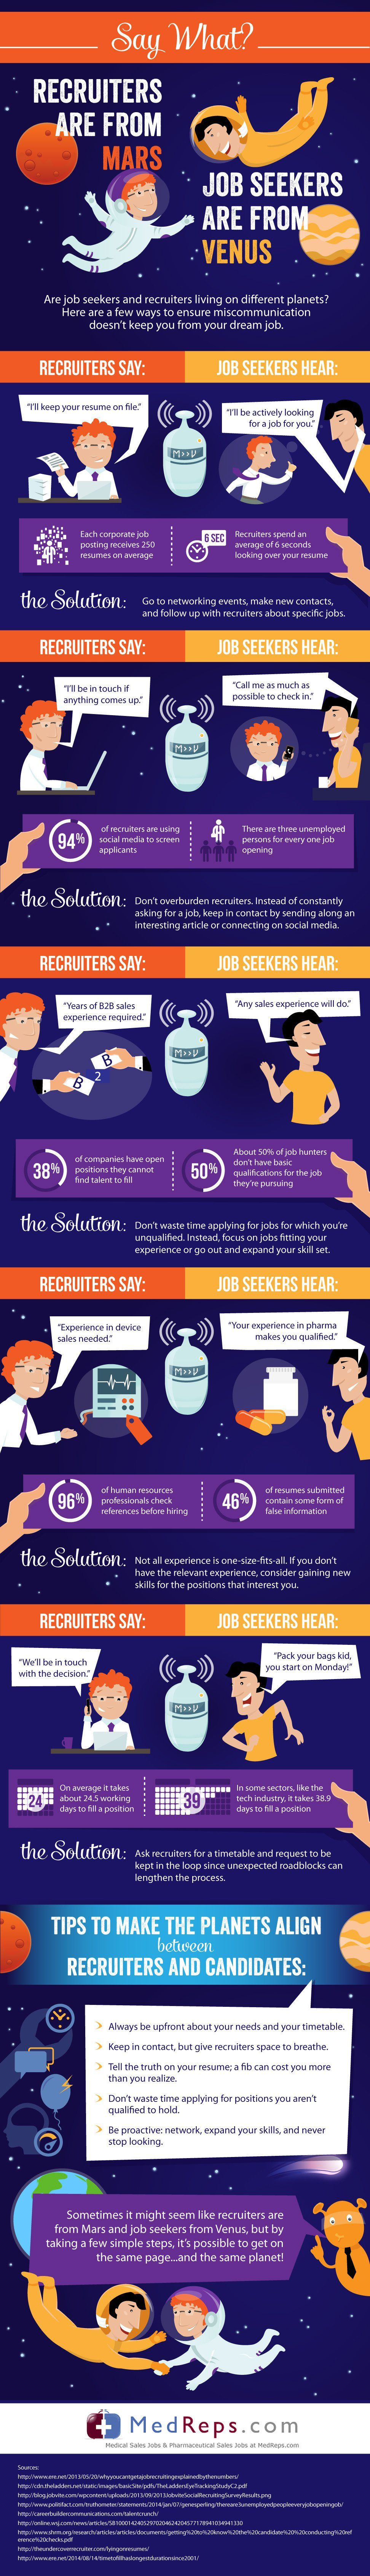 recruiter musings practical advice for job seekers in the real share this